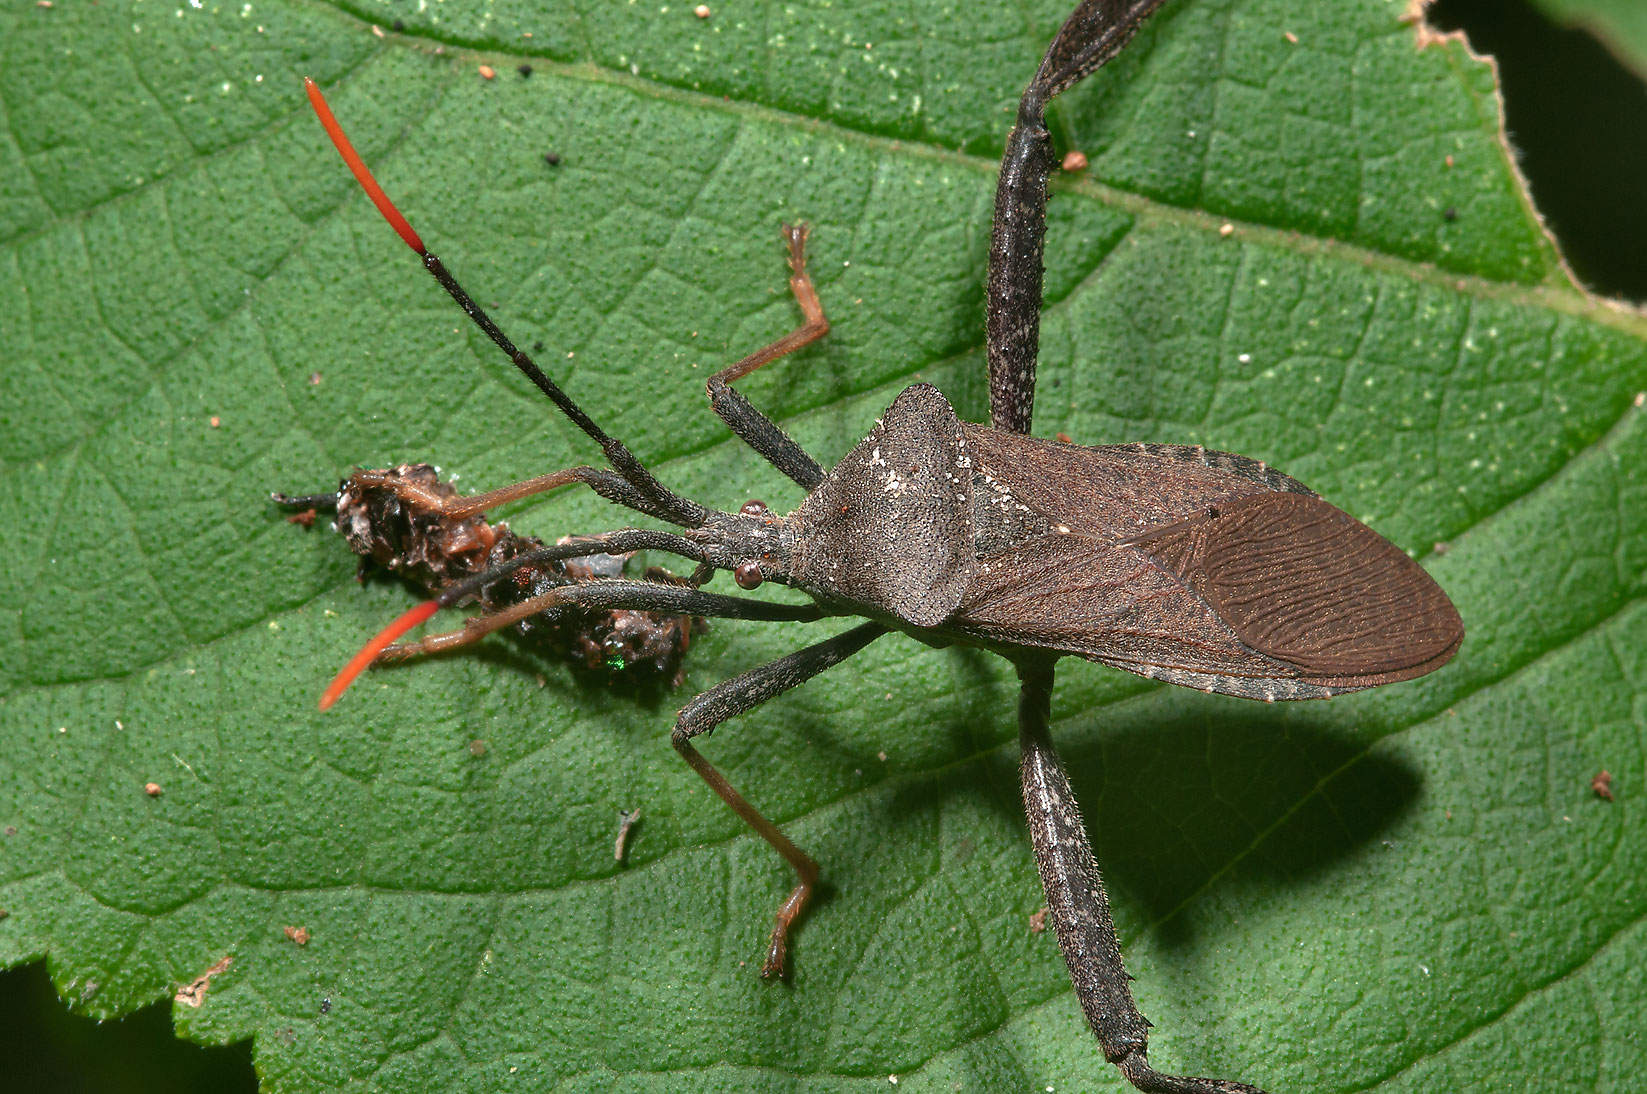 Leaf footed bug eating some brown stuff in Lick Creek Park. College Station, Texas